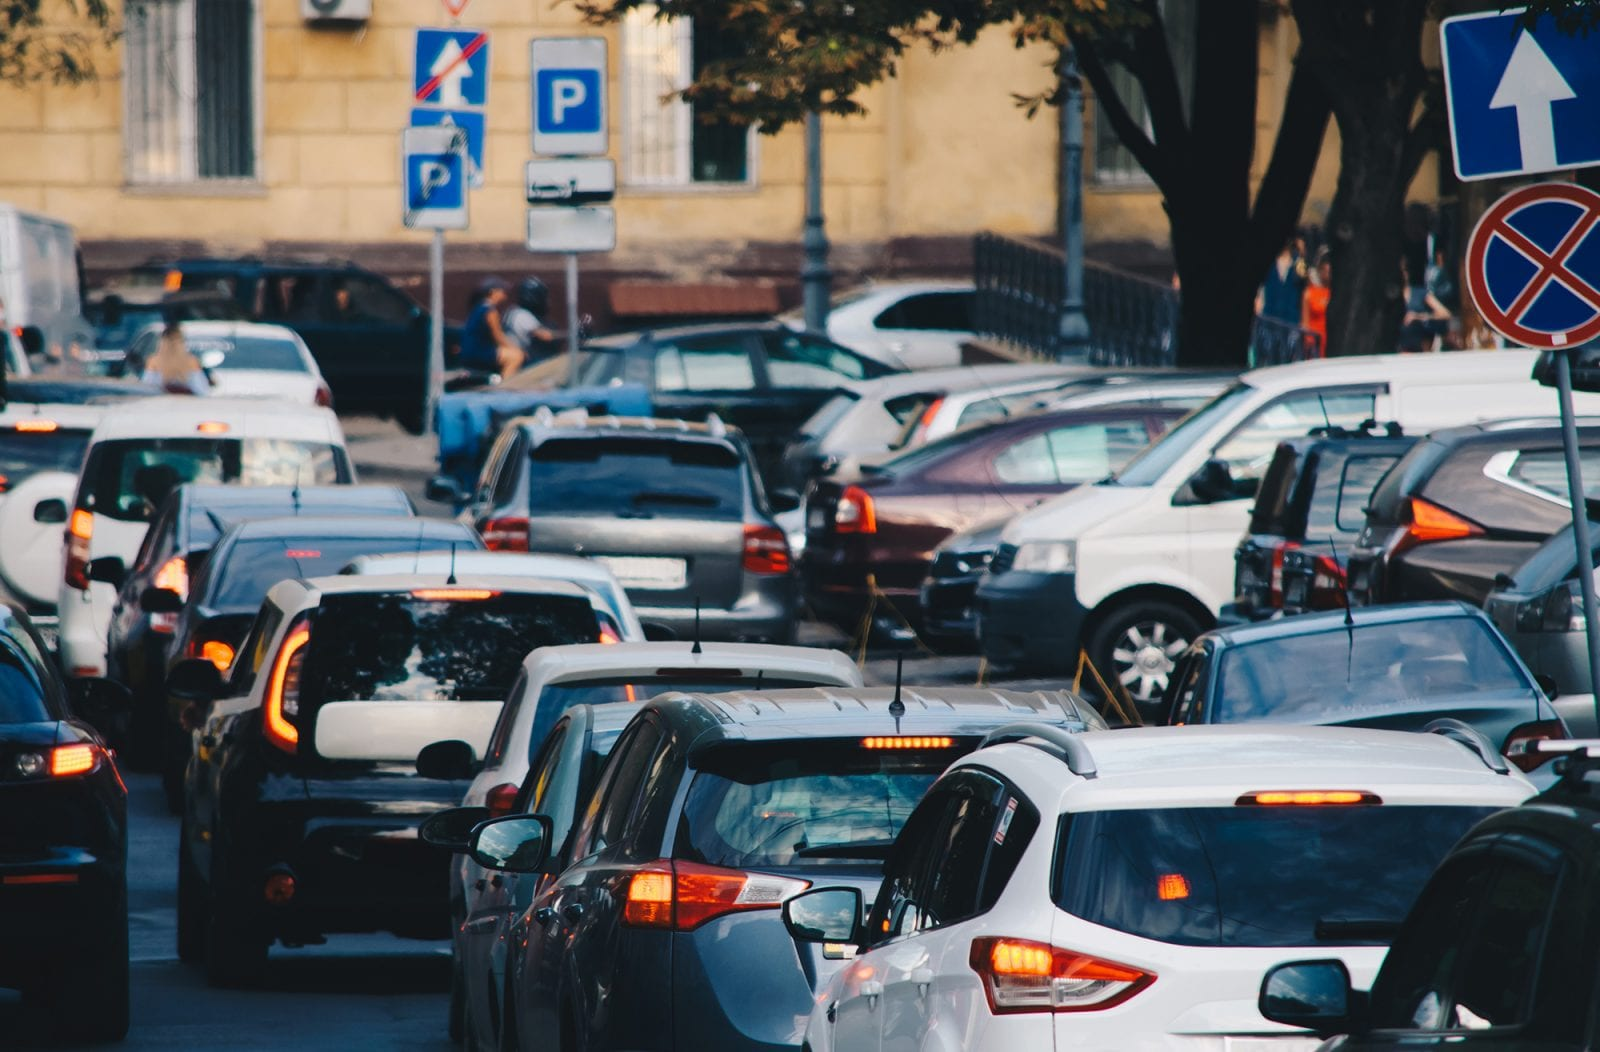 The Ultra-Low Emission Zone is not far away – are you ready?